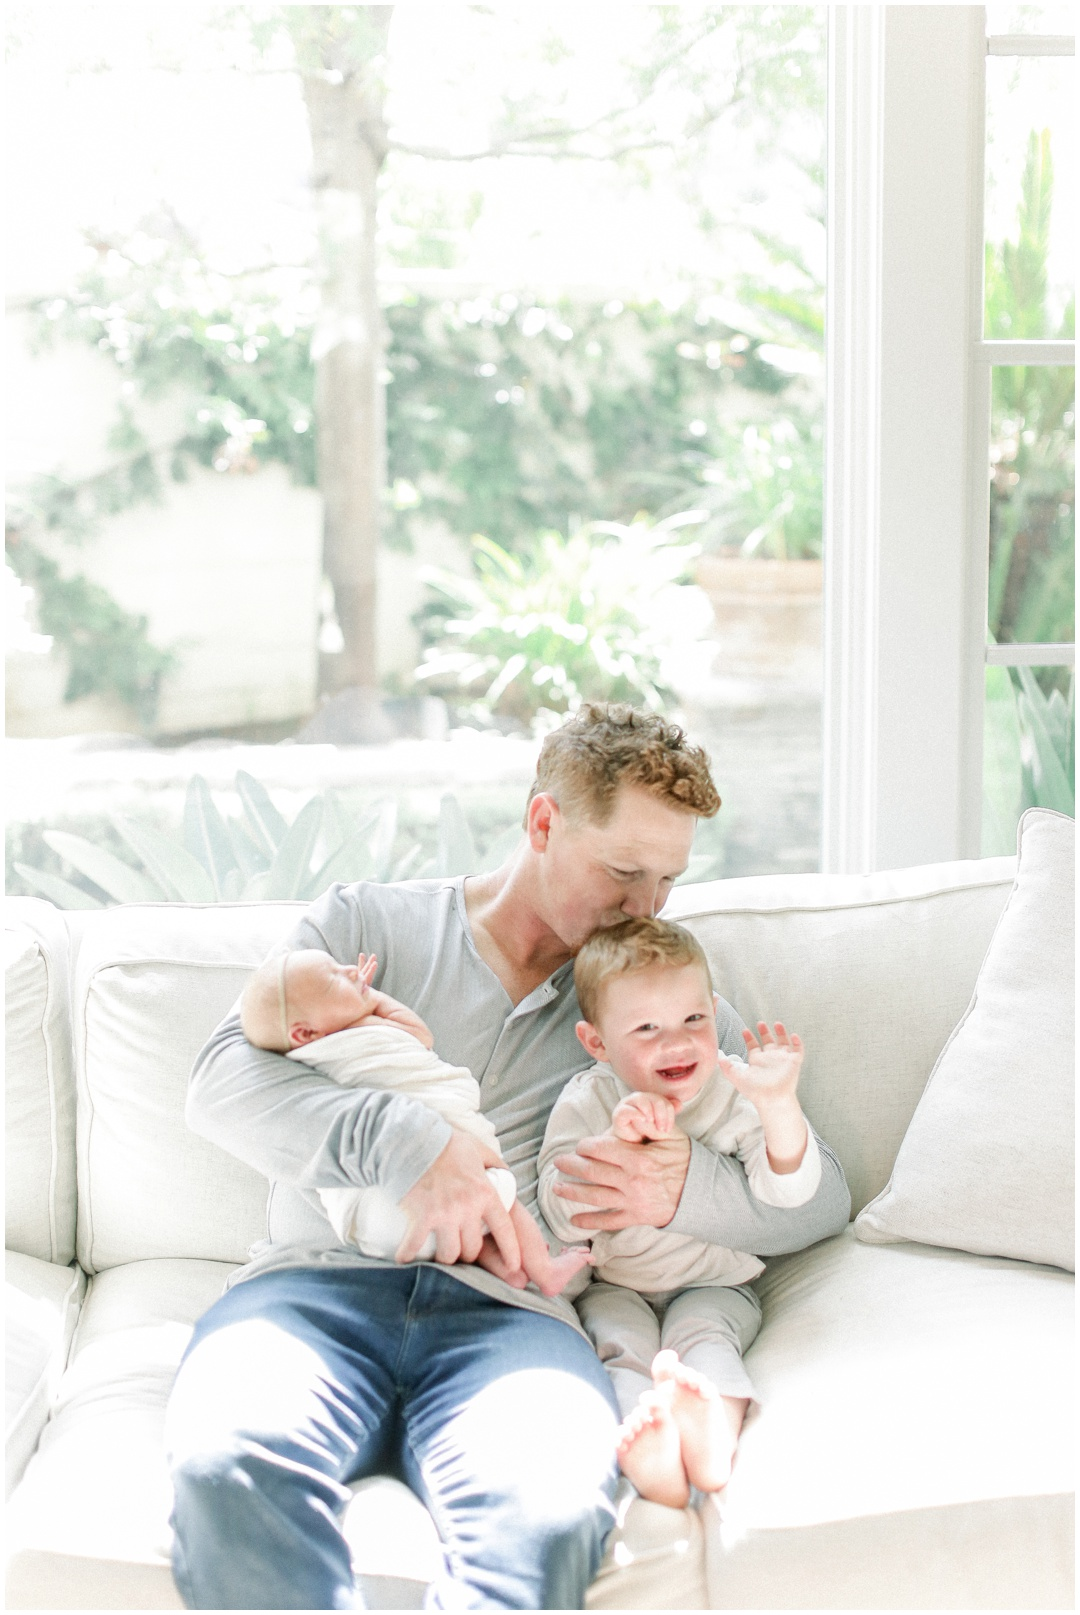 Newport_Beach_Newborn_Light_Airy_Natural_Photographer_Newport_Beach_Photographer_Orange_County_Family_Photographer_Cori_Kleckner_Photography_Newport_Beach_Photographer_newborn_kole_calhoun56_kole_calhoun_Jennifer_Calhoun_Knox_Calhoun_3808.jpg